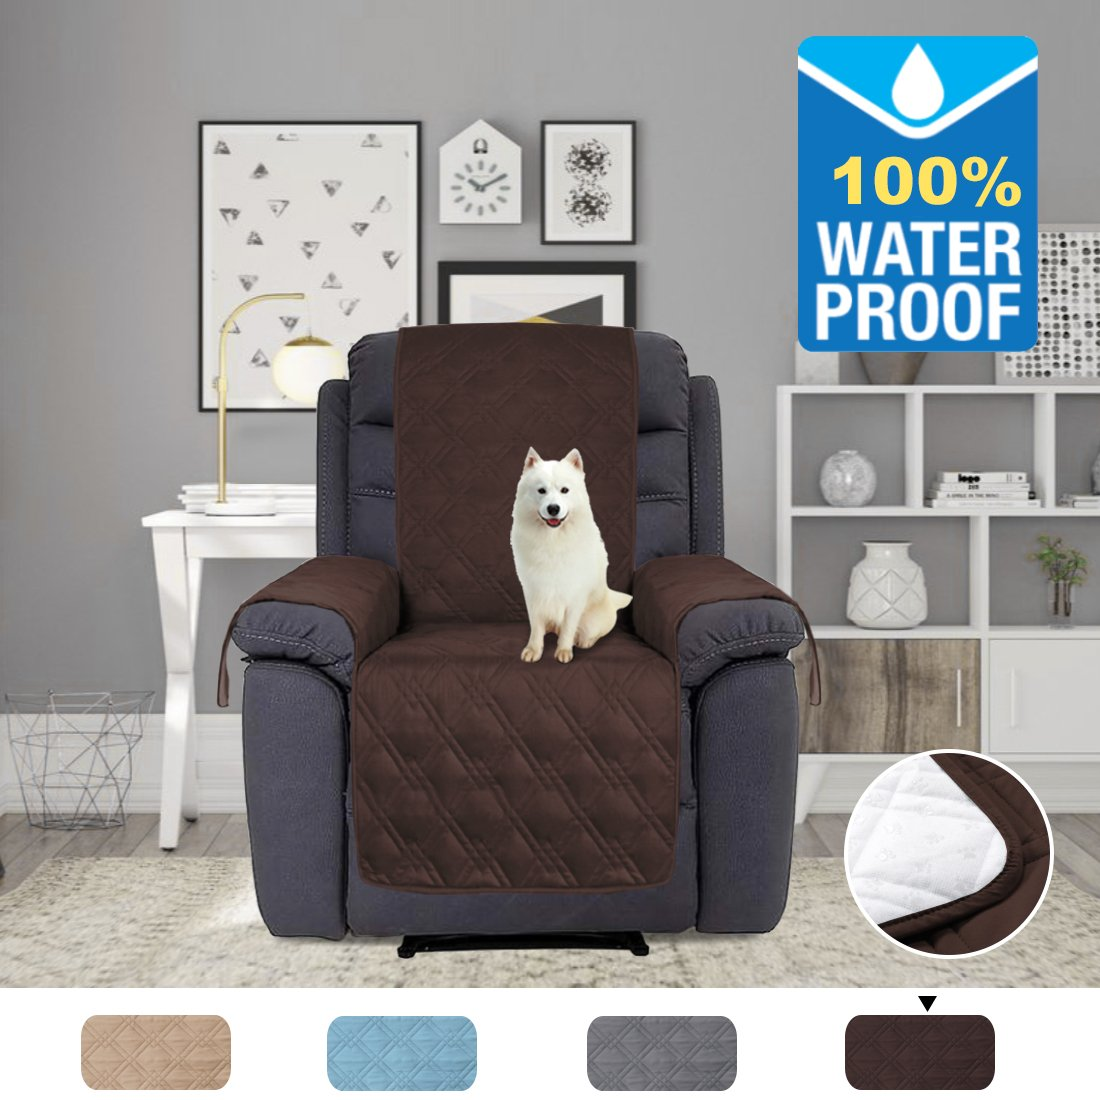 H.VERSAILTEX 100% Water Proof Furniture Cover Silicon Rubber Print to Keep Stay in Place Protector for Pets (Oversized Recliner: Brown) - 91 inch x 84 inch